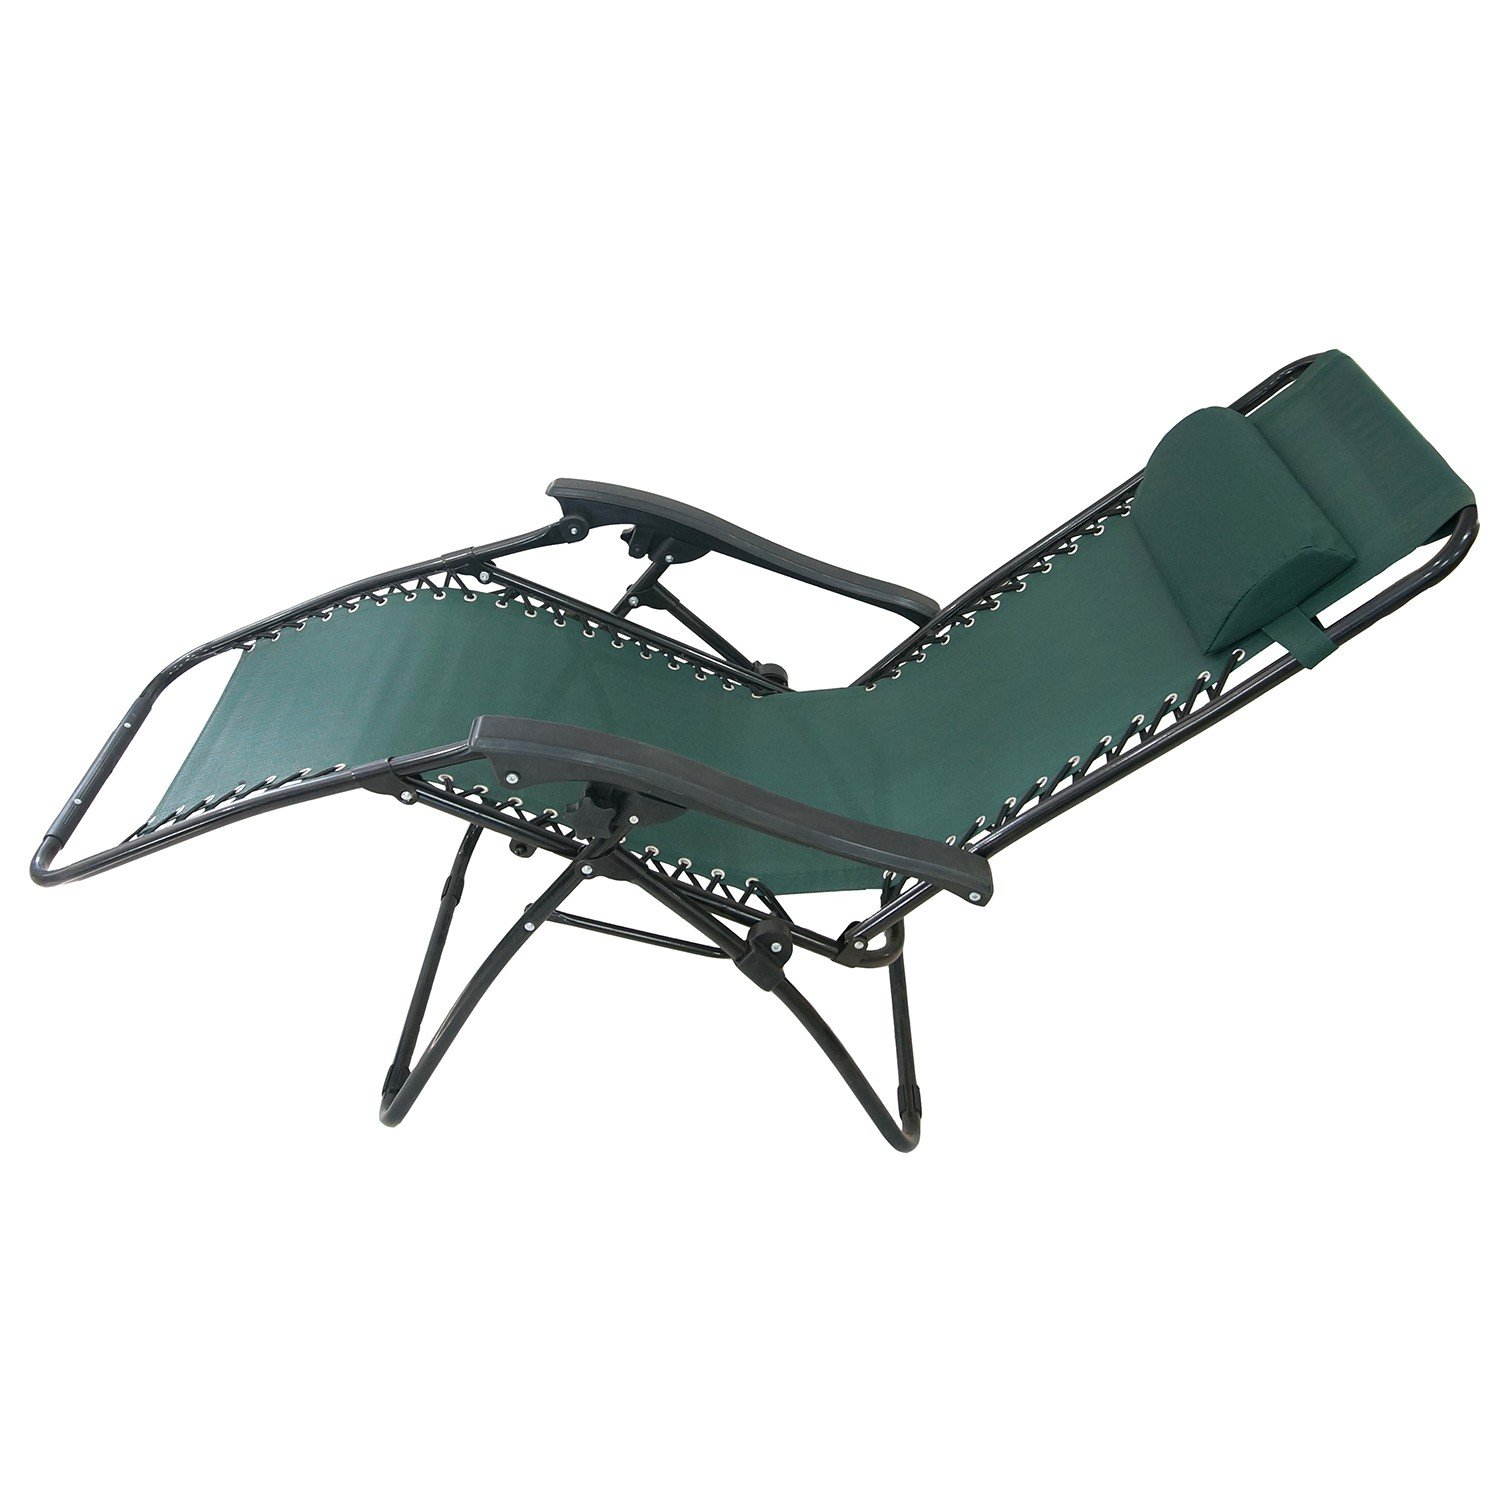 Todeco Chaise Longue Inclinable Transat en Textil¨ne de Jardin